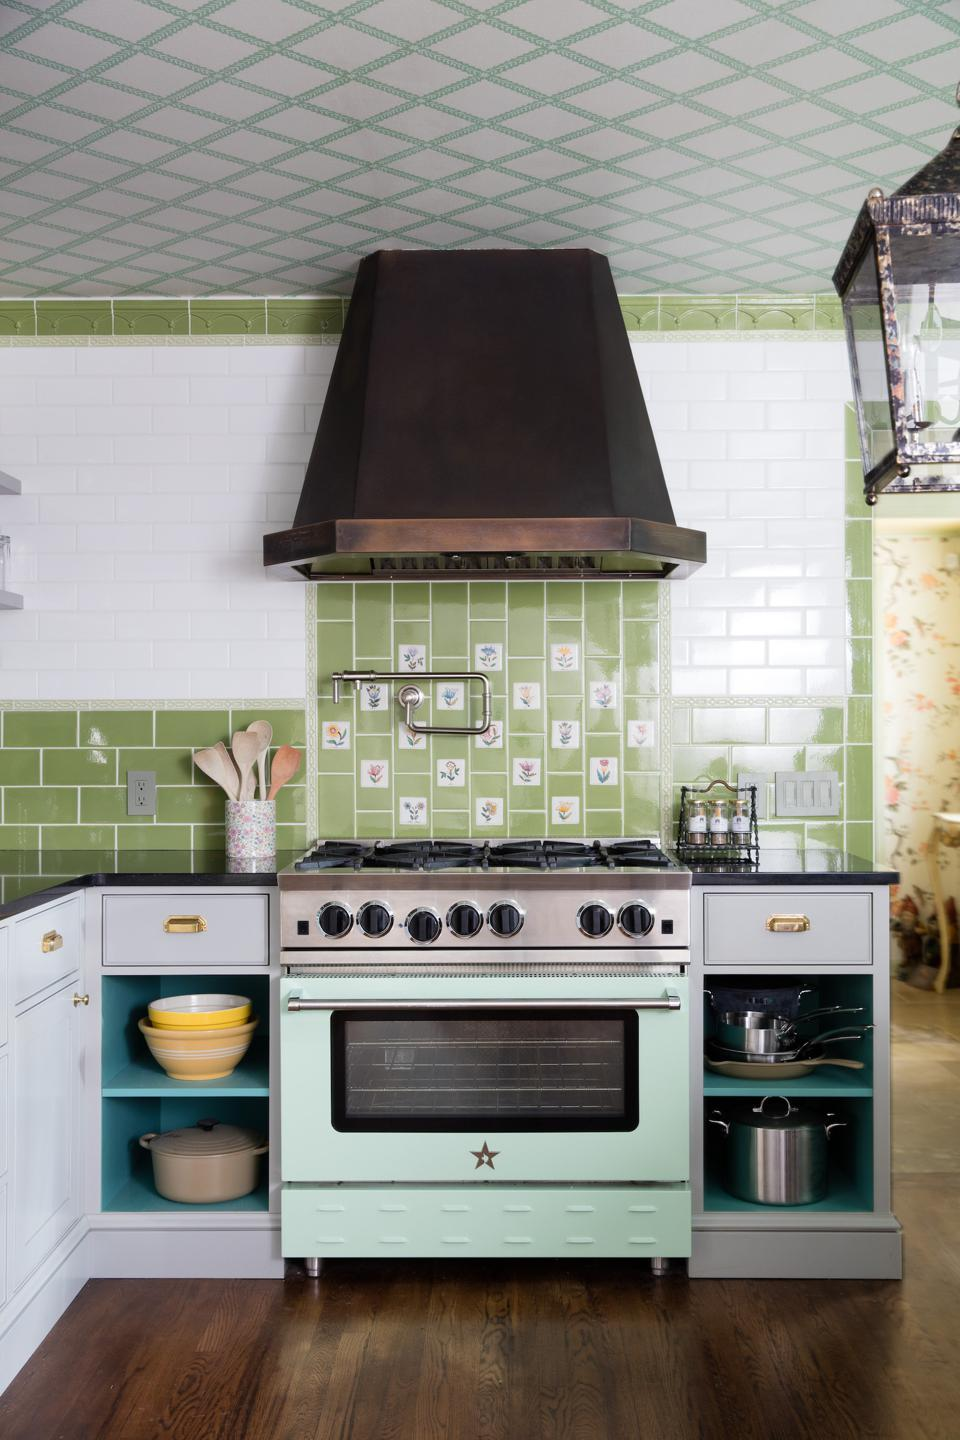 Blue Star's pastel green stove.